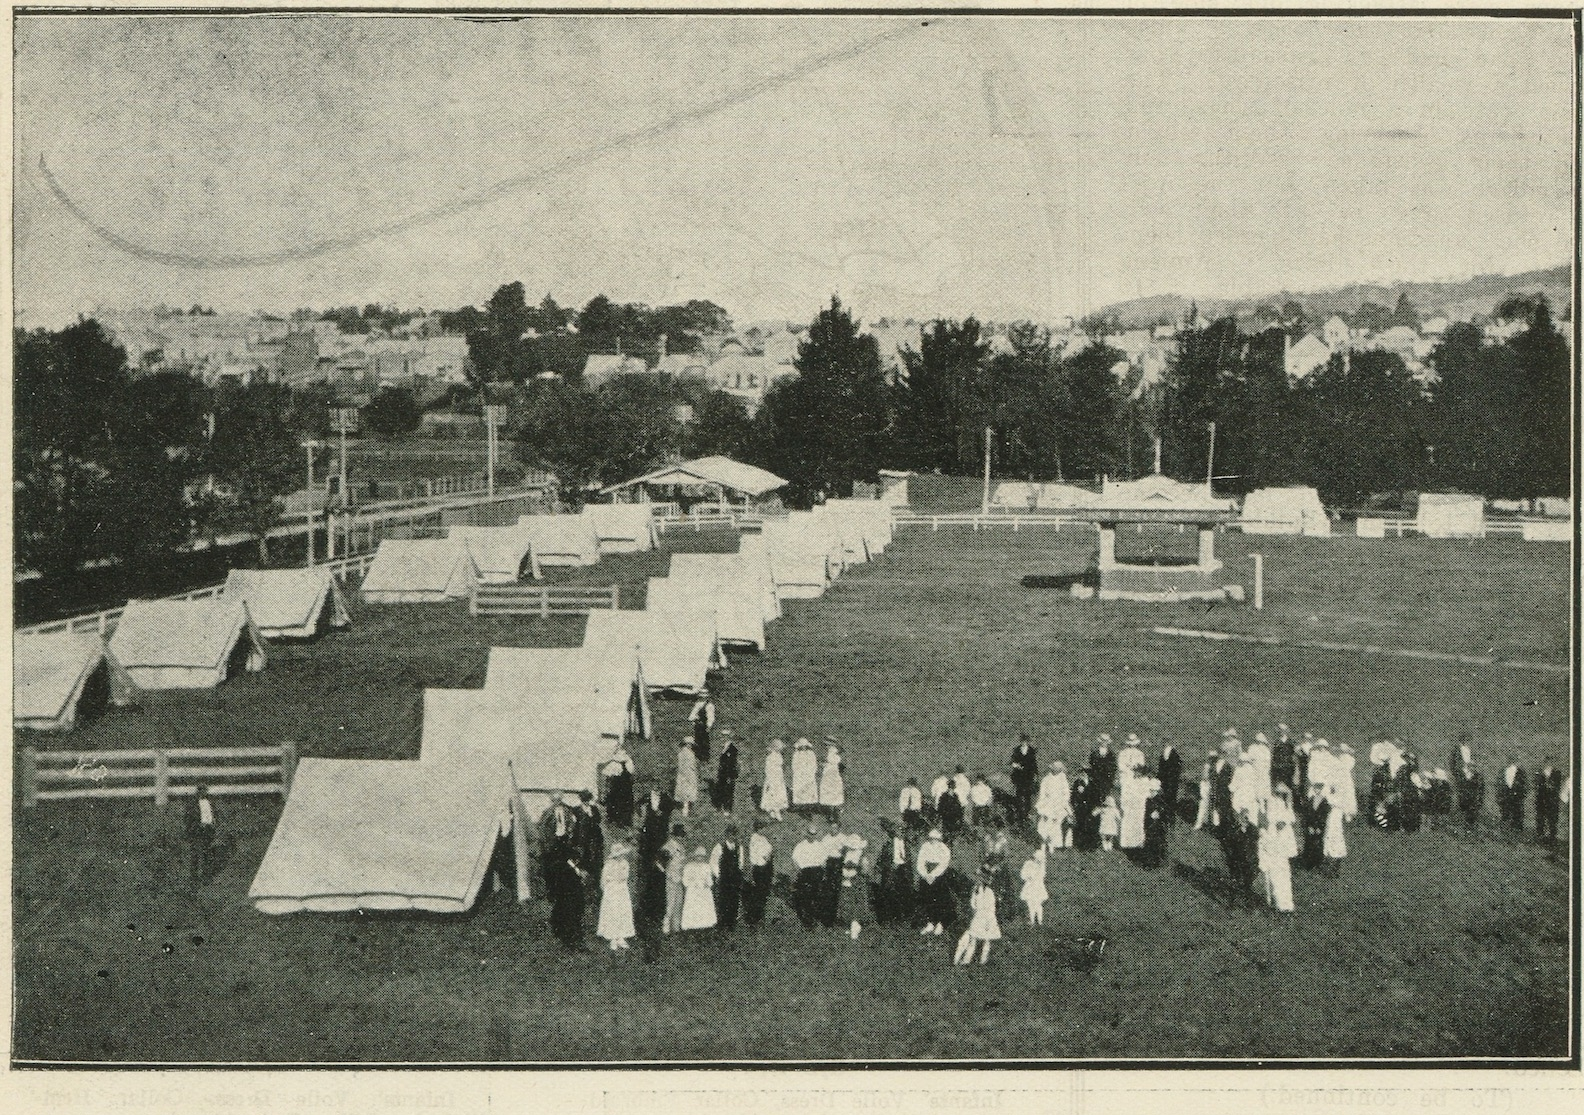 """'The Quarantine Camp for """"Repatriating"""" Marooned Queenslanders, Tenterfield Show Ground'. Page 28 of The Queenslander Pictorial, supplement to The Queenslander, 22 February 1919. Photo: John Oxley Library, State Library of Queensland."""